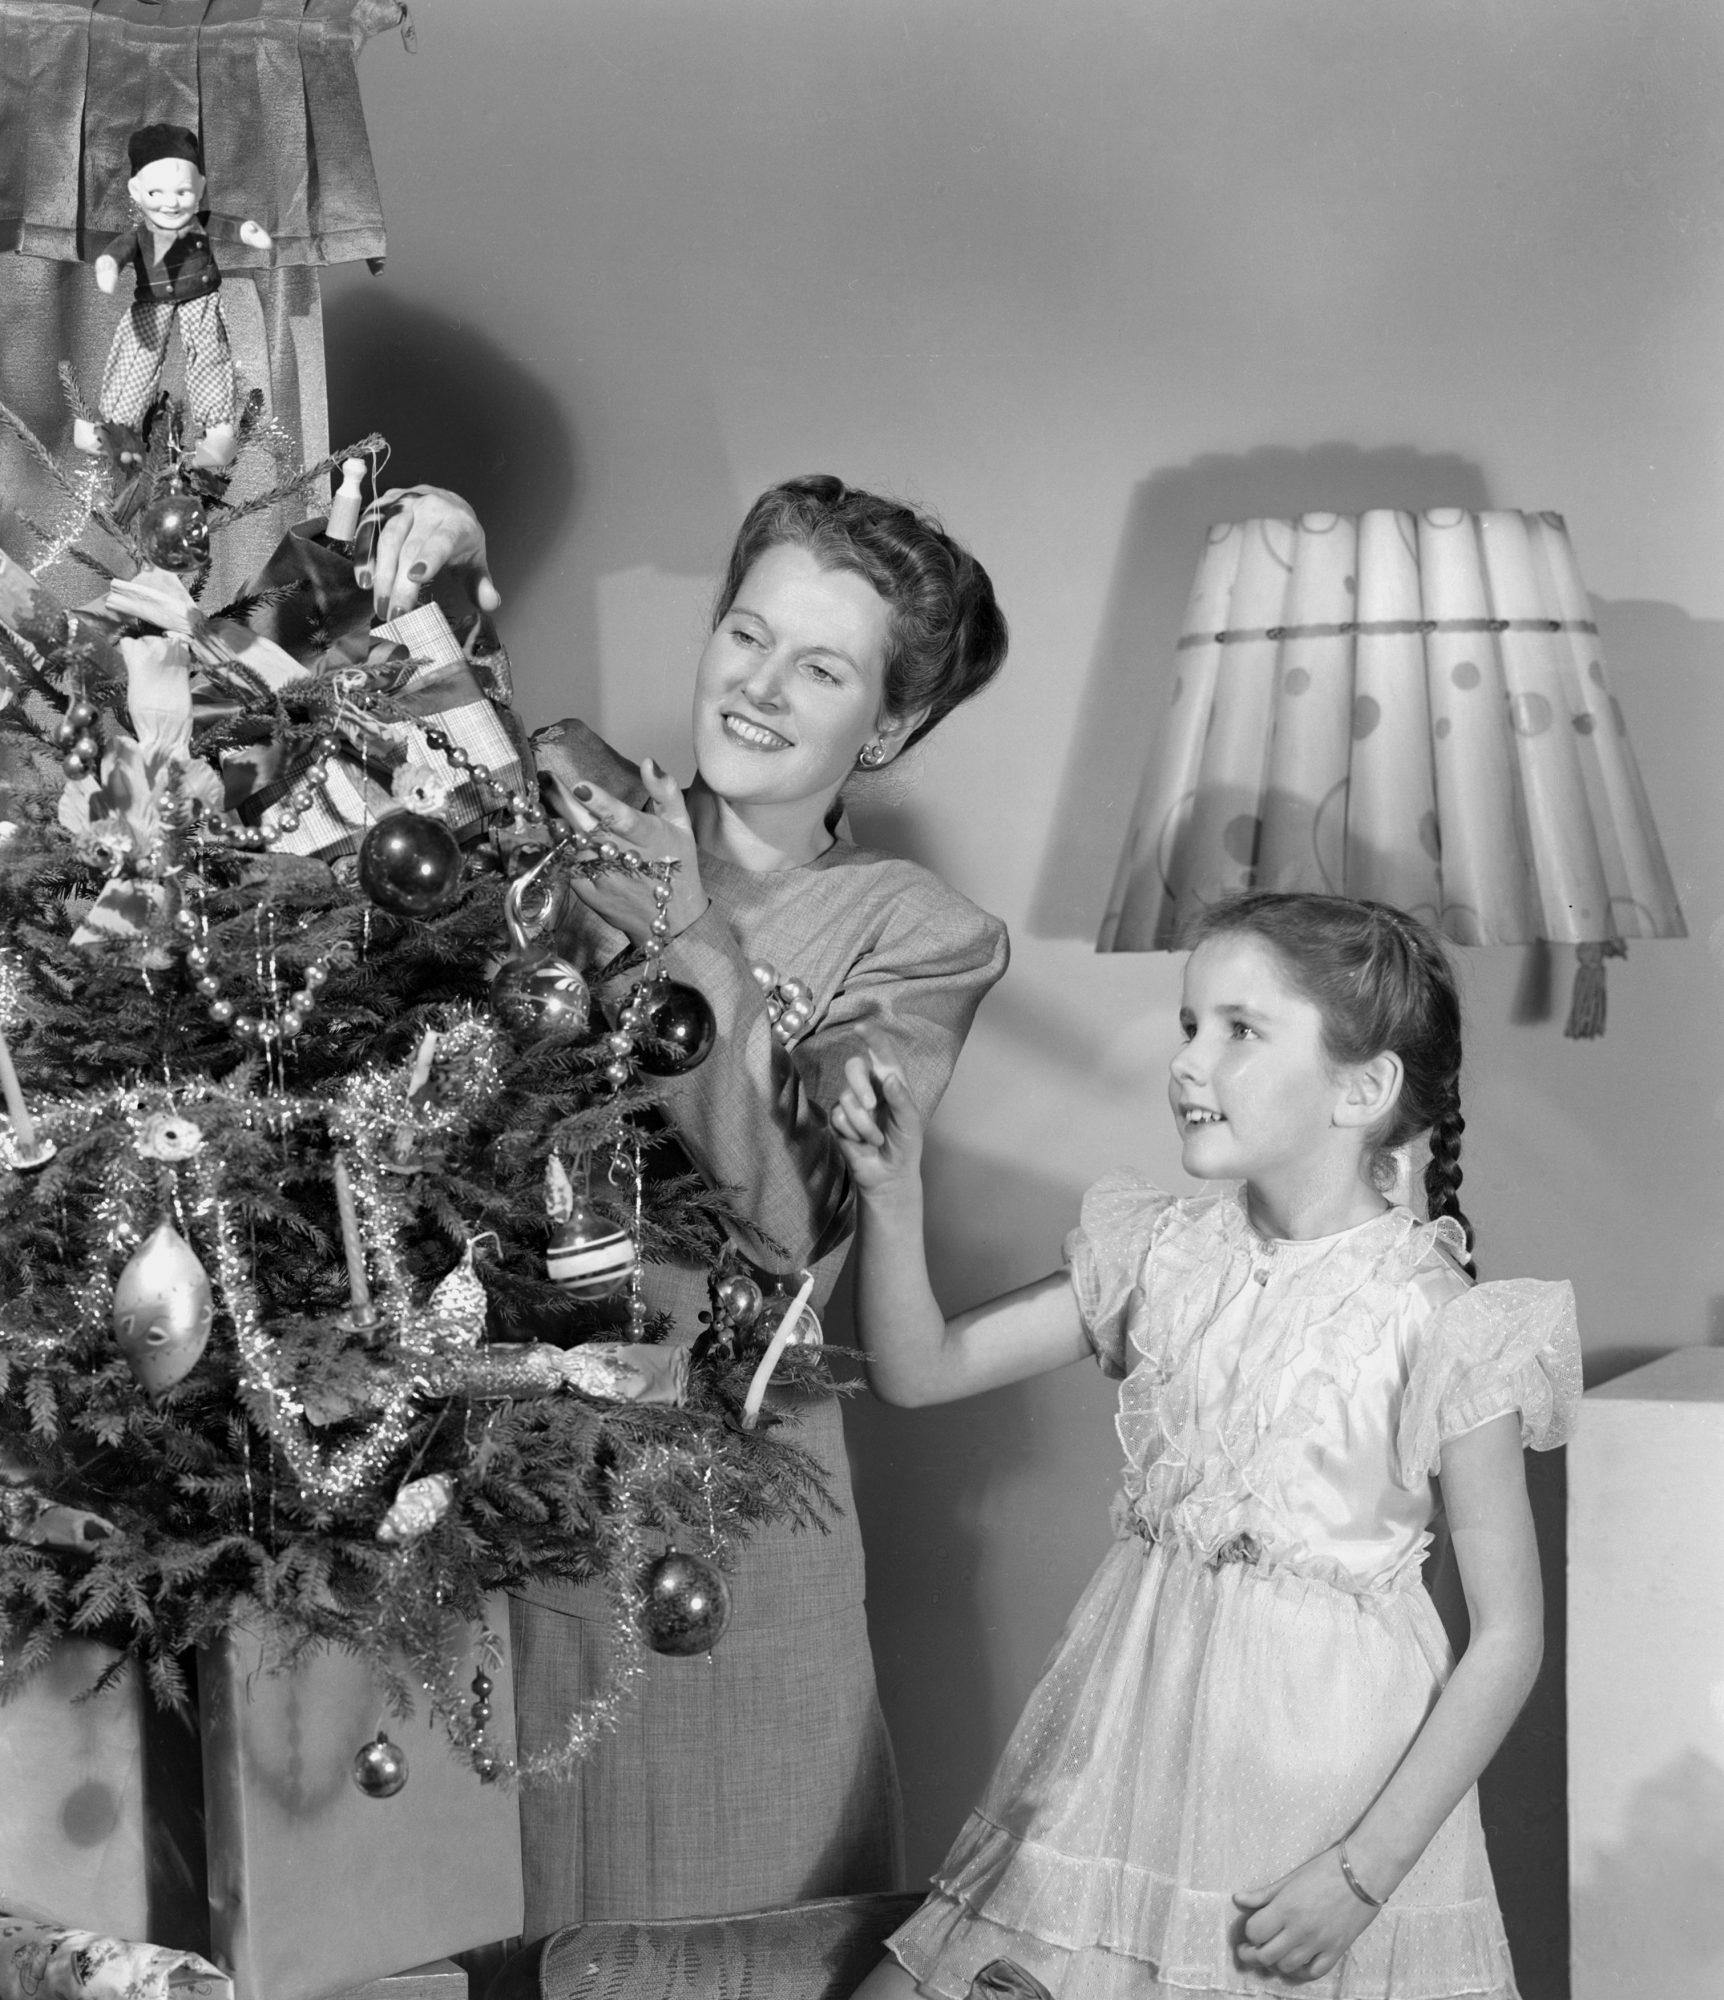 The Shiny Brite company produced the most popular Christmas tree ornaments in the United States throughout the 1940s—a great selling point during World War II. In early years, wartime production necessitated the replacement of the ornament's metal cap with a cardboardtab, from which the owner would useyarnorstring to hang the ornament.                                       Pictured here: Mother and daughter decorate their Christmas tree together. By this time, it was a tradition for many homes to trim the tree as a family. Tinsel garlands are draped around toys, bulb ornaments, and a toy topper for the tree.